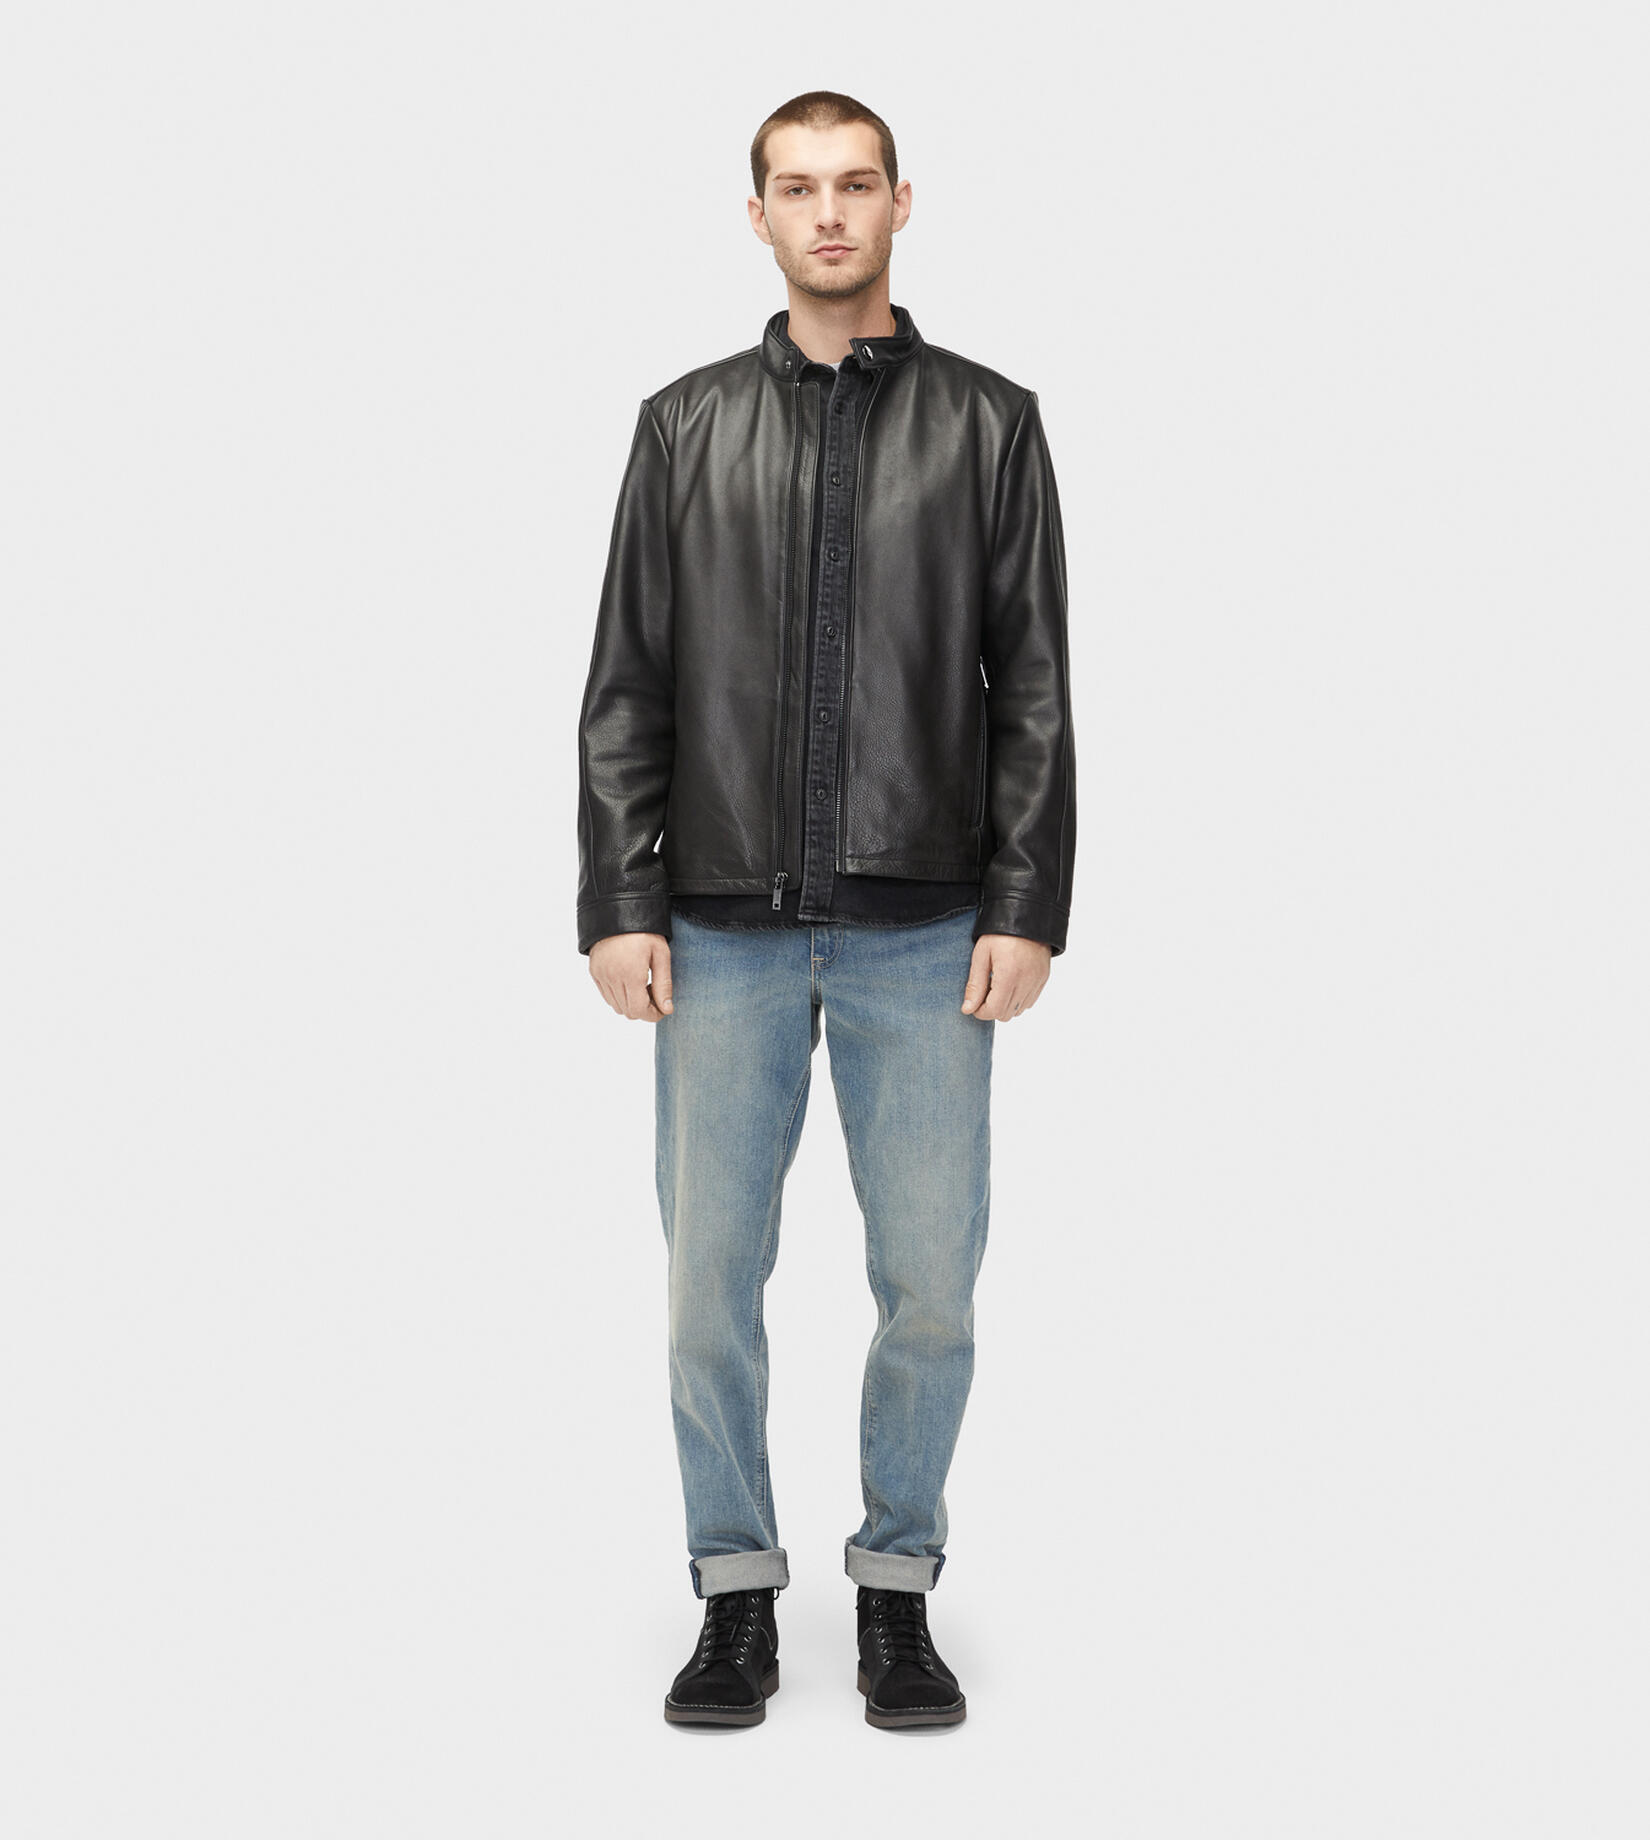 Orlando Leather Racer Vestes